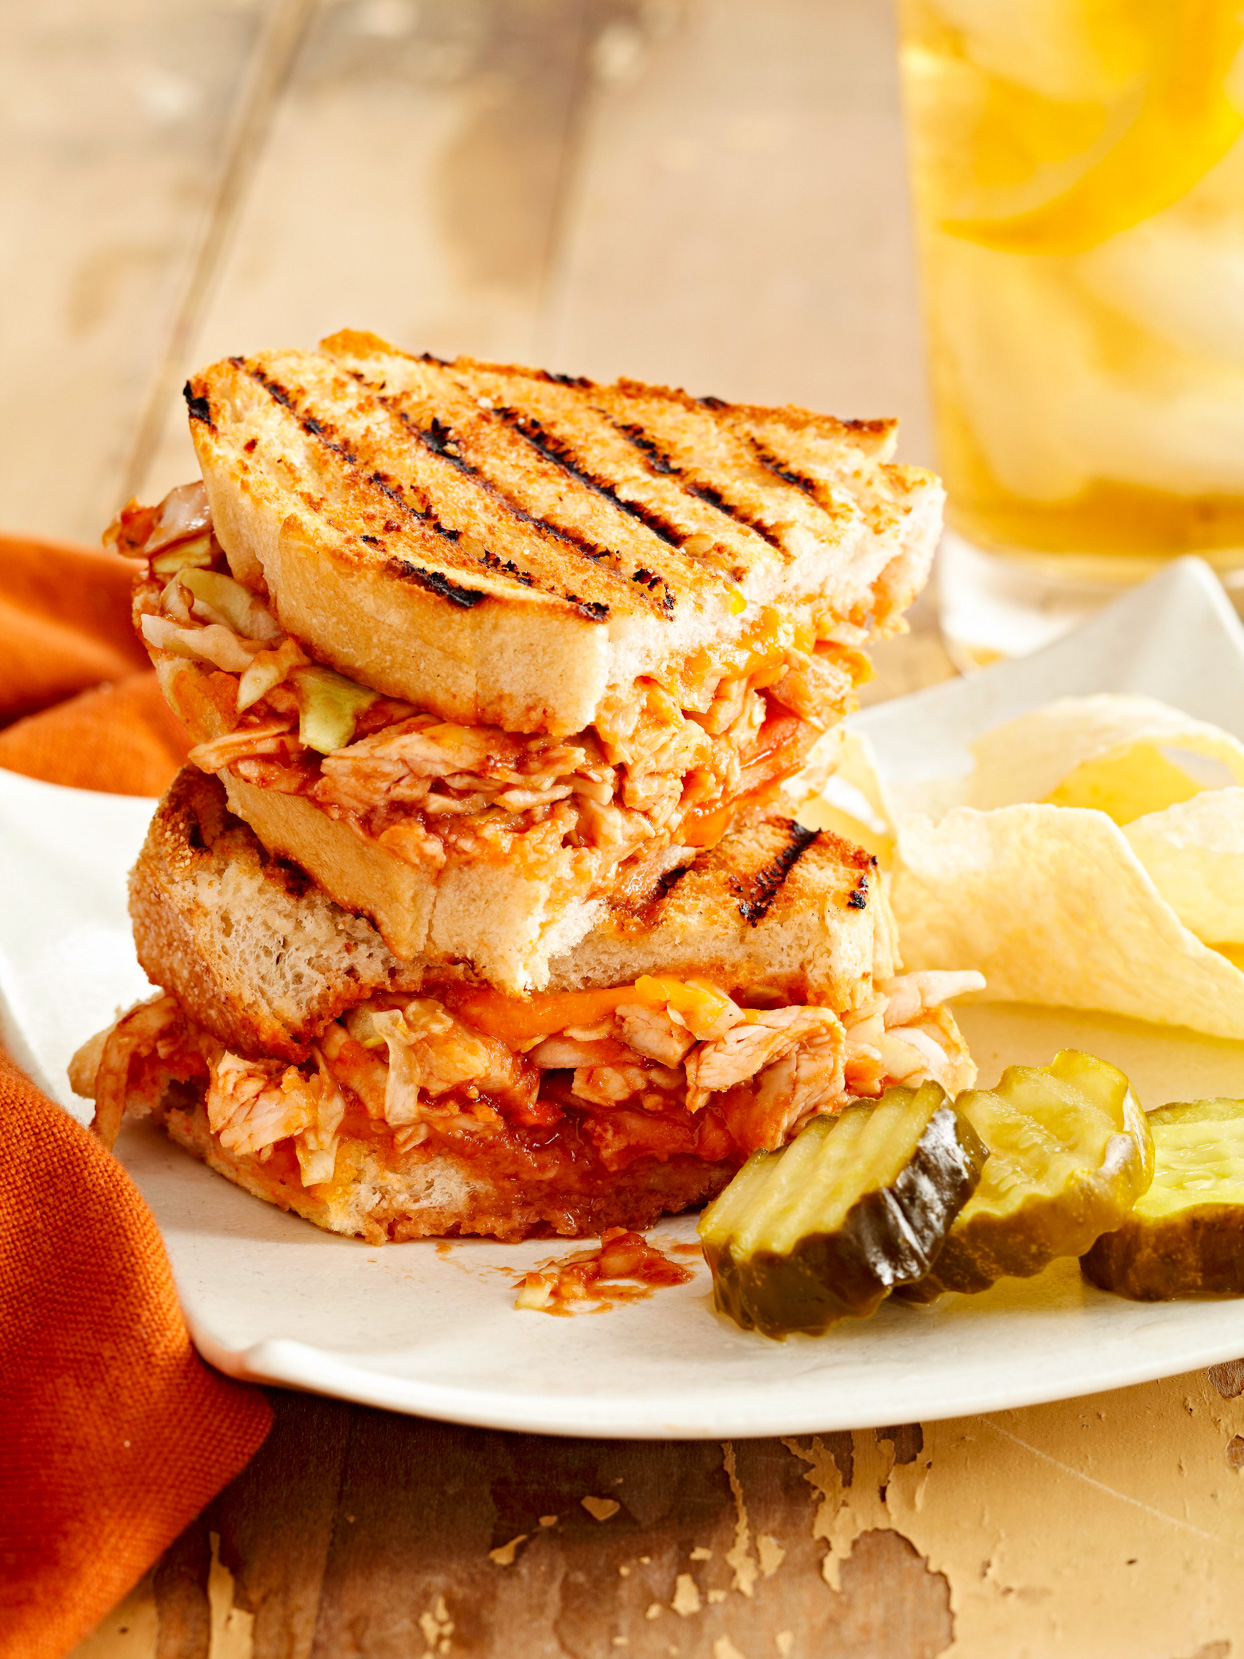 BBQ Chicken and Smoked Cheddar Sandwiches